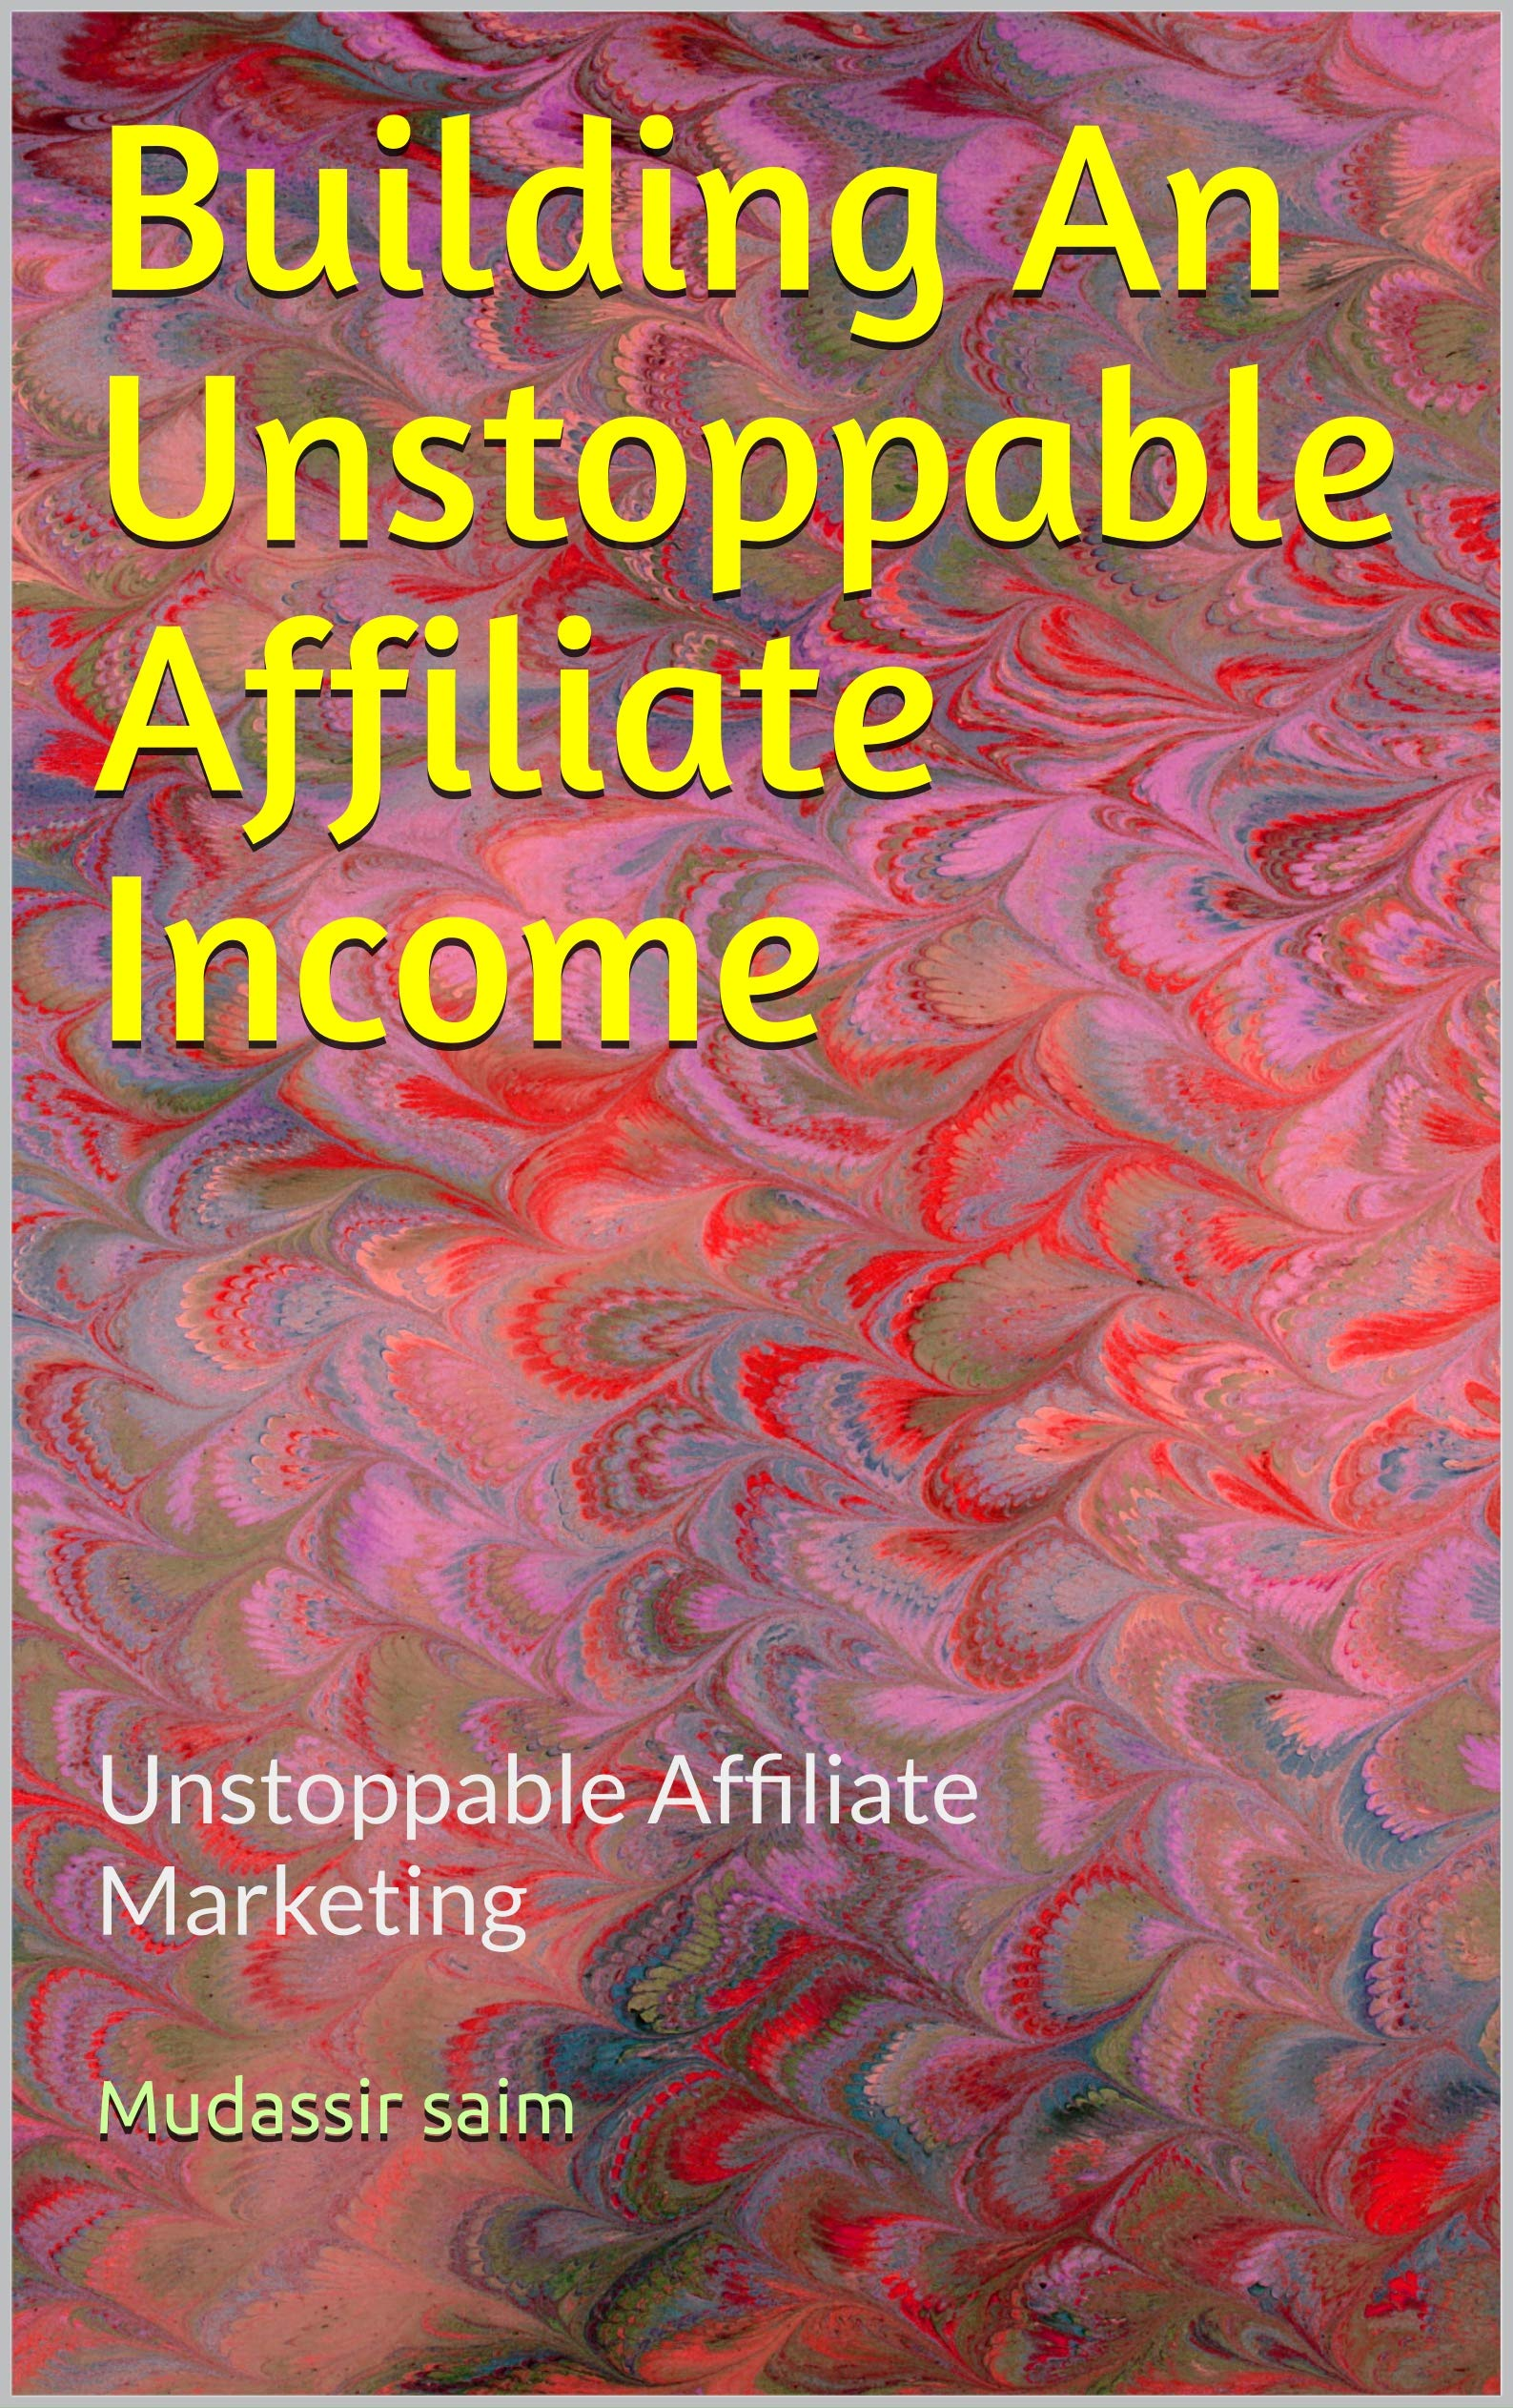 Building An Unstoppable Affiliate Income : Unstoppable Affiliate Marketing